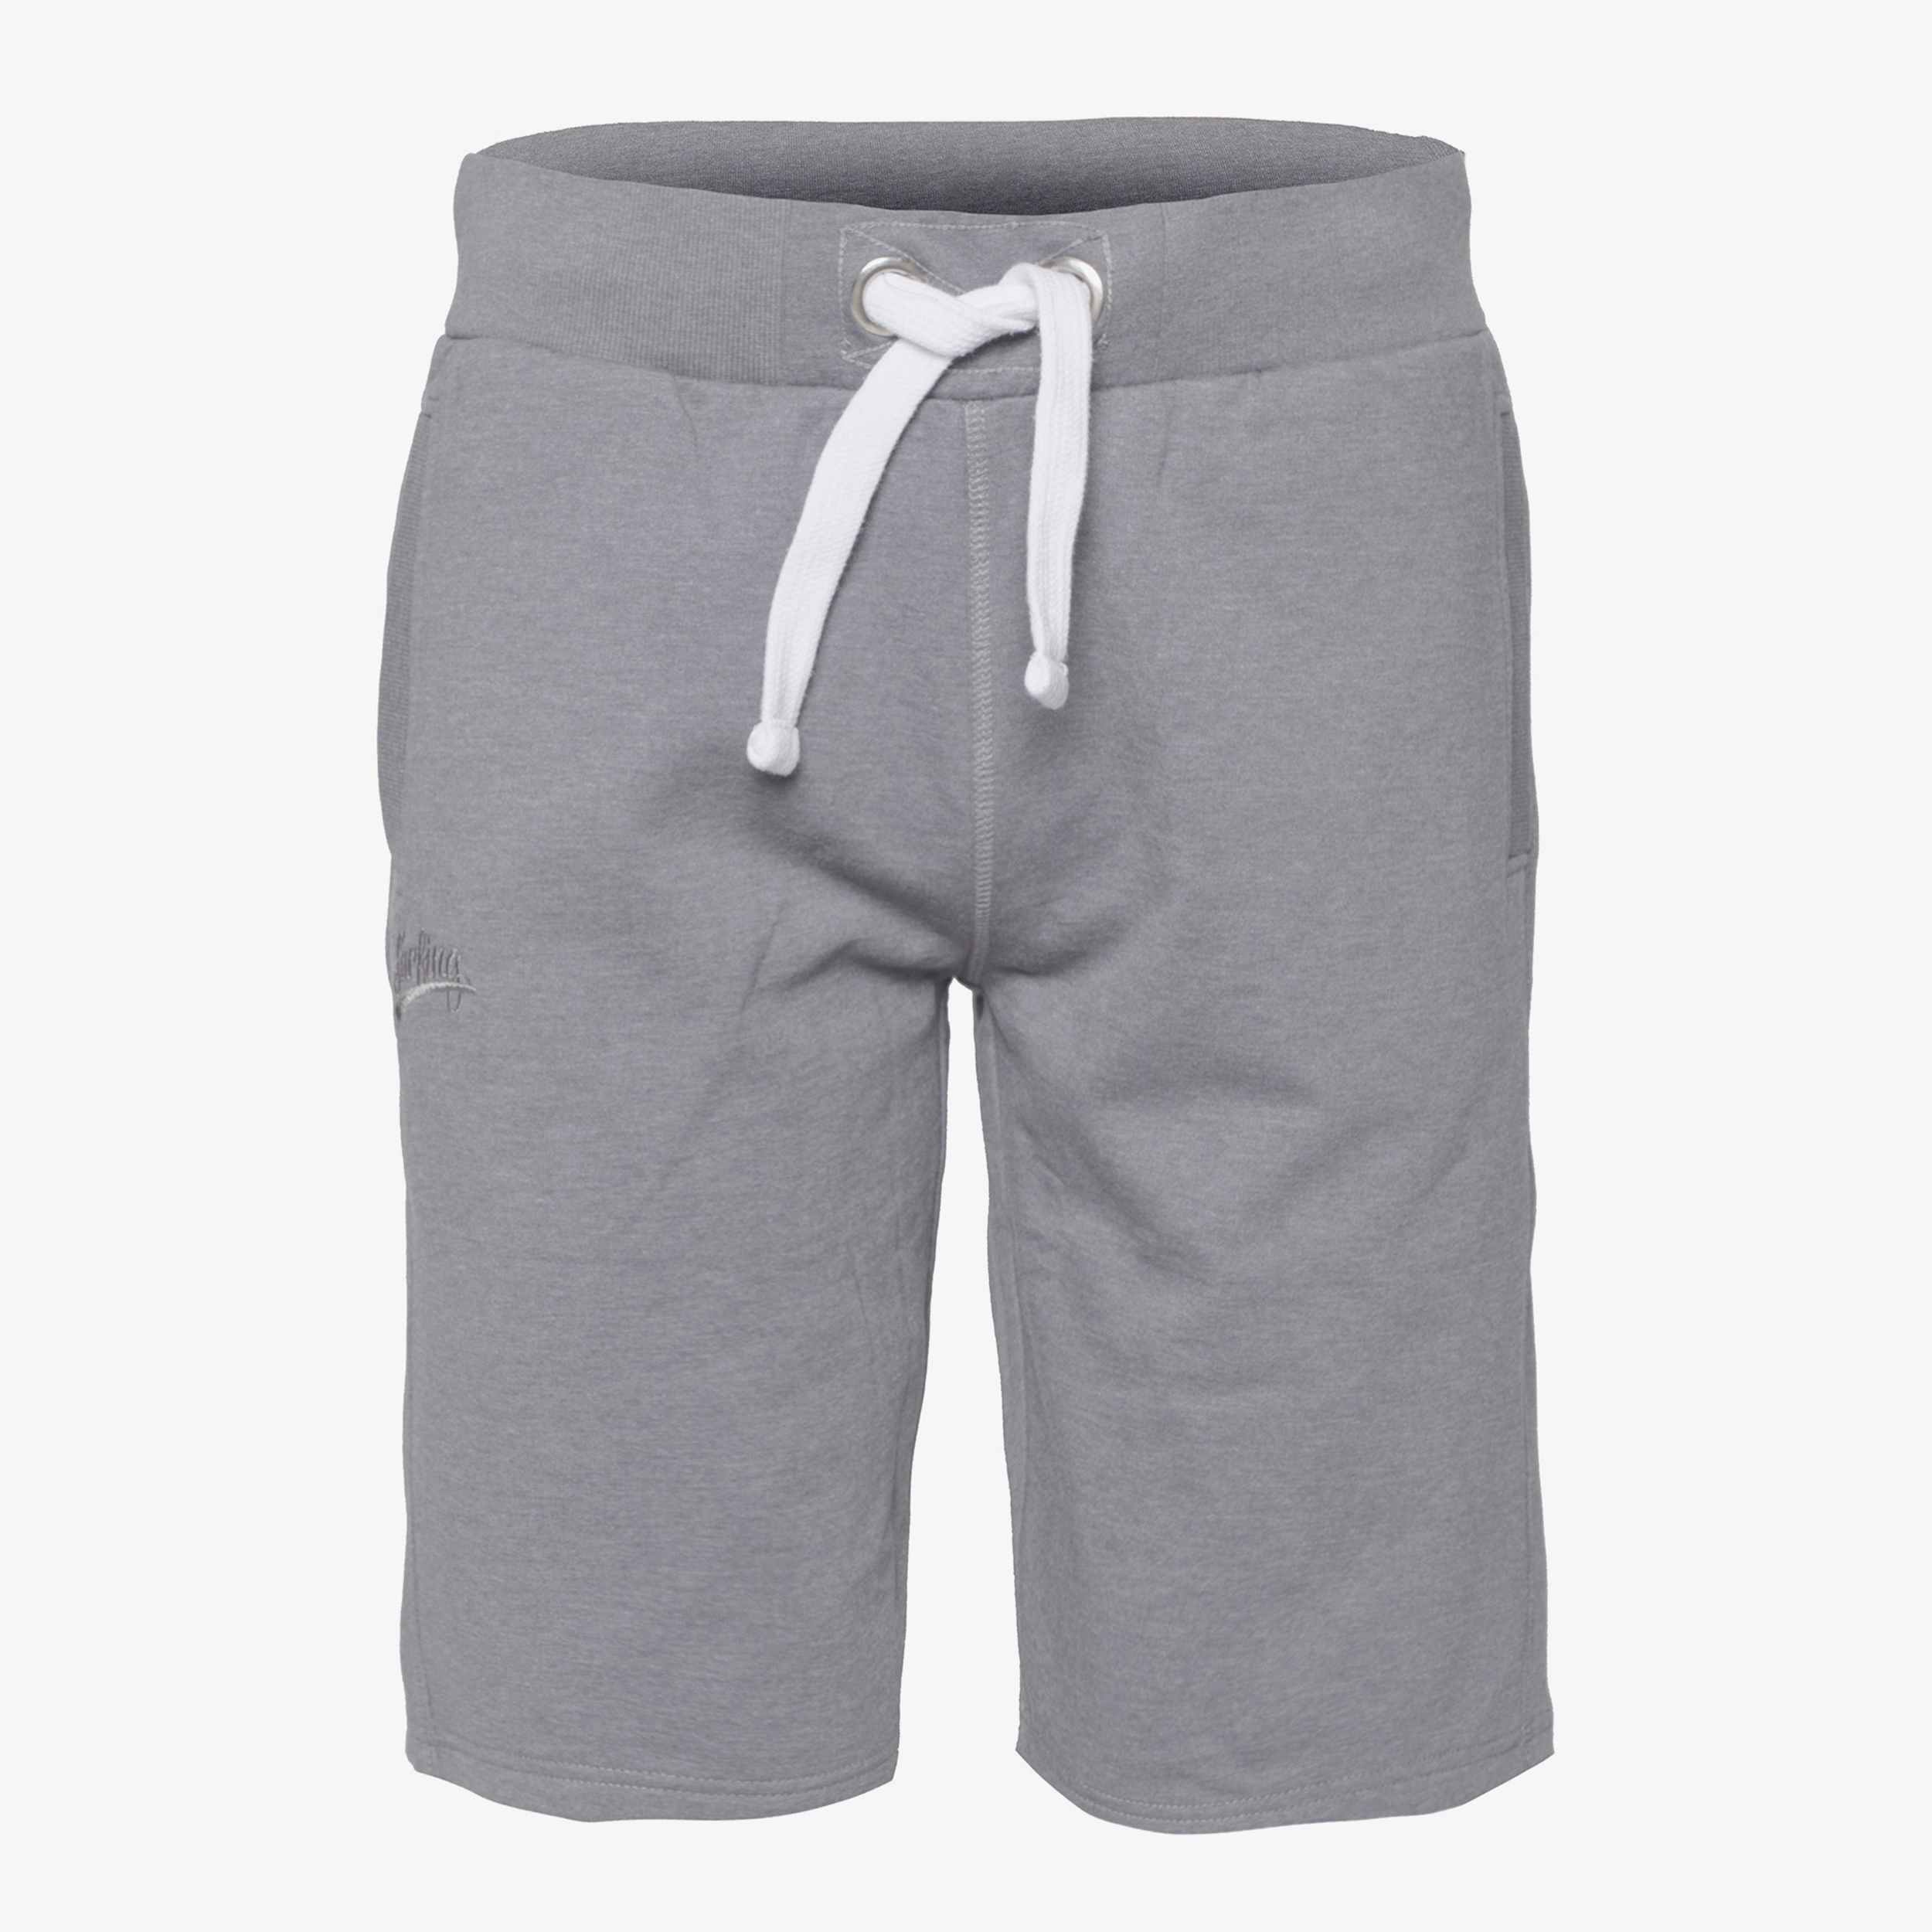 Scapino Korte Broek Heren.Unsigned Heren Sweat Short Online Bestellen Scapino